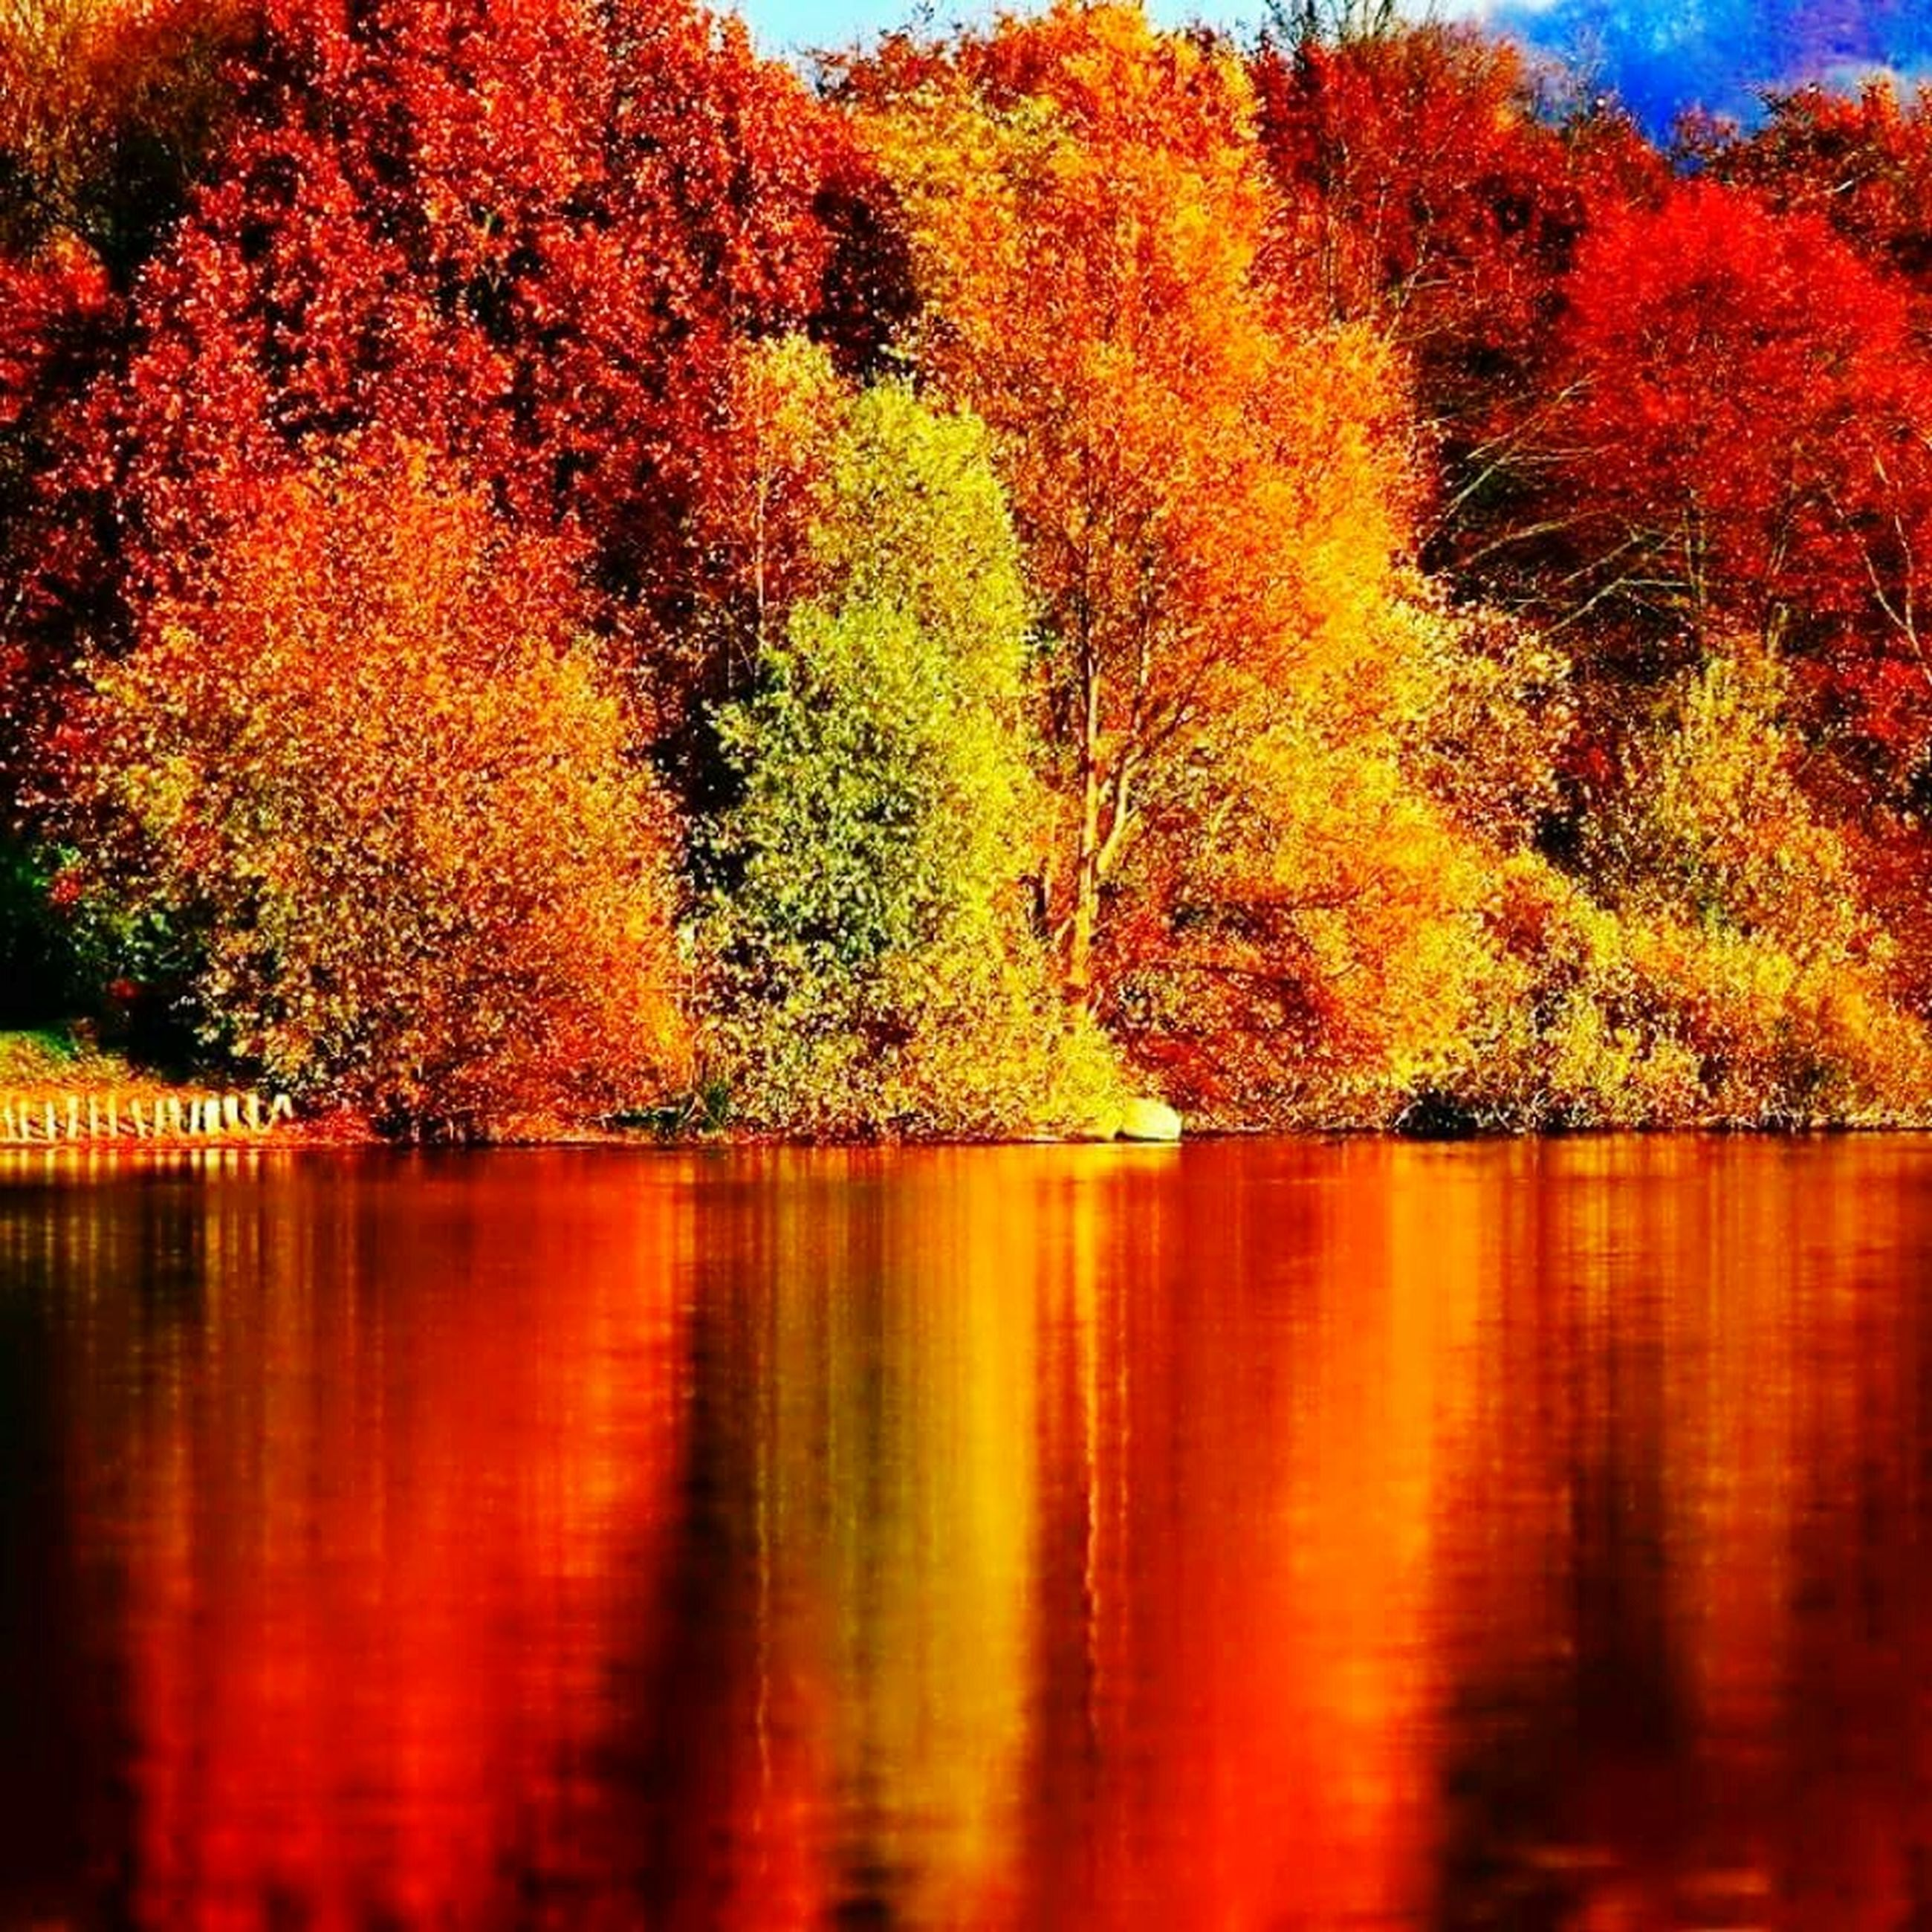 autumn, change, tree, reflection, beauty in nature, nature, leaf, scenics, tranquil scene, lake, tranquility, water, orange color, no people, outdoors, growth, day, waterfront, forest, red, maple leaf, maple